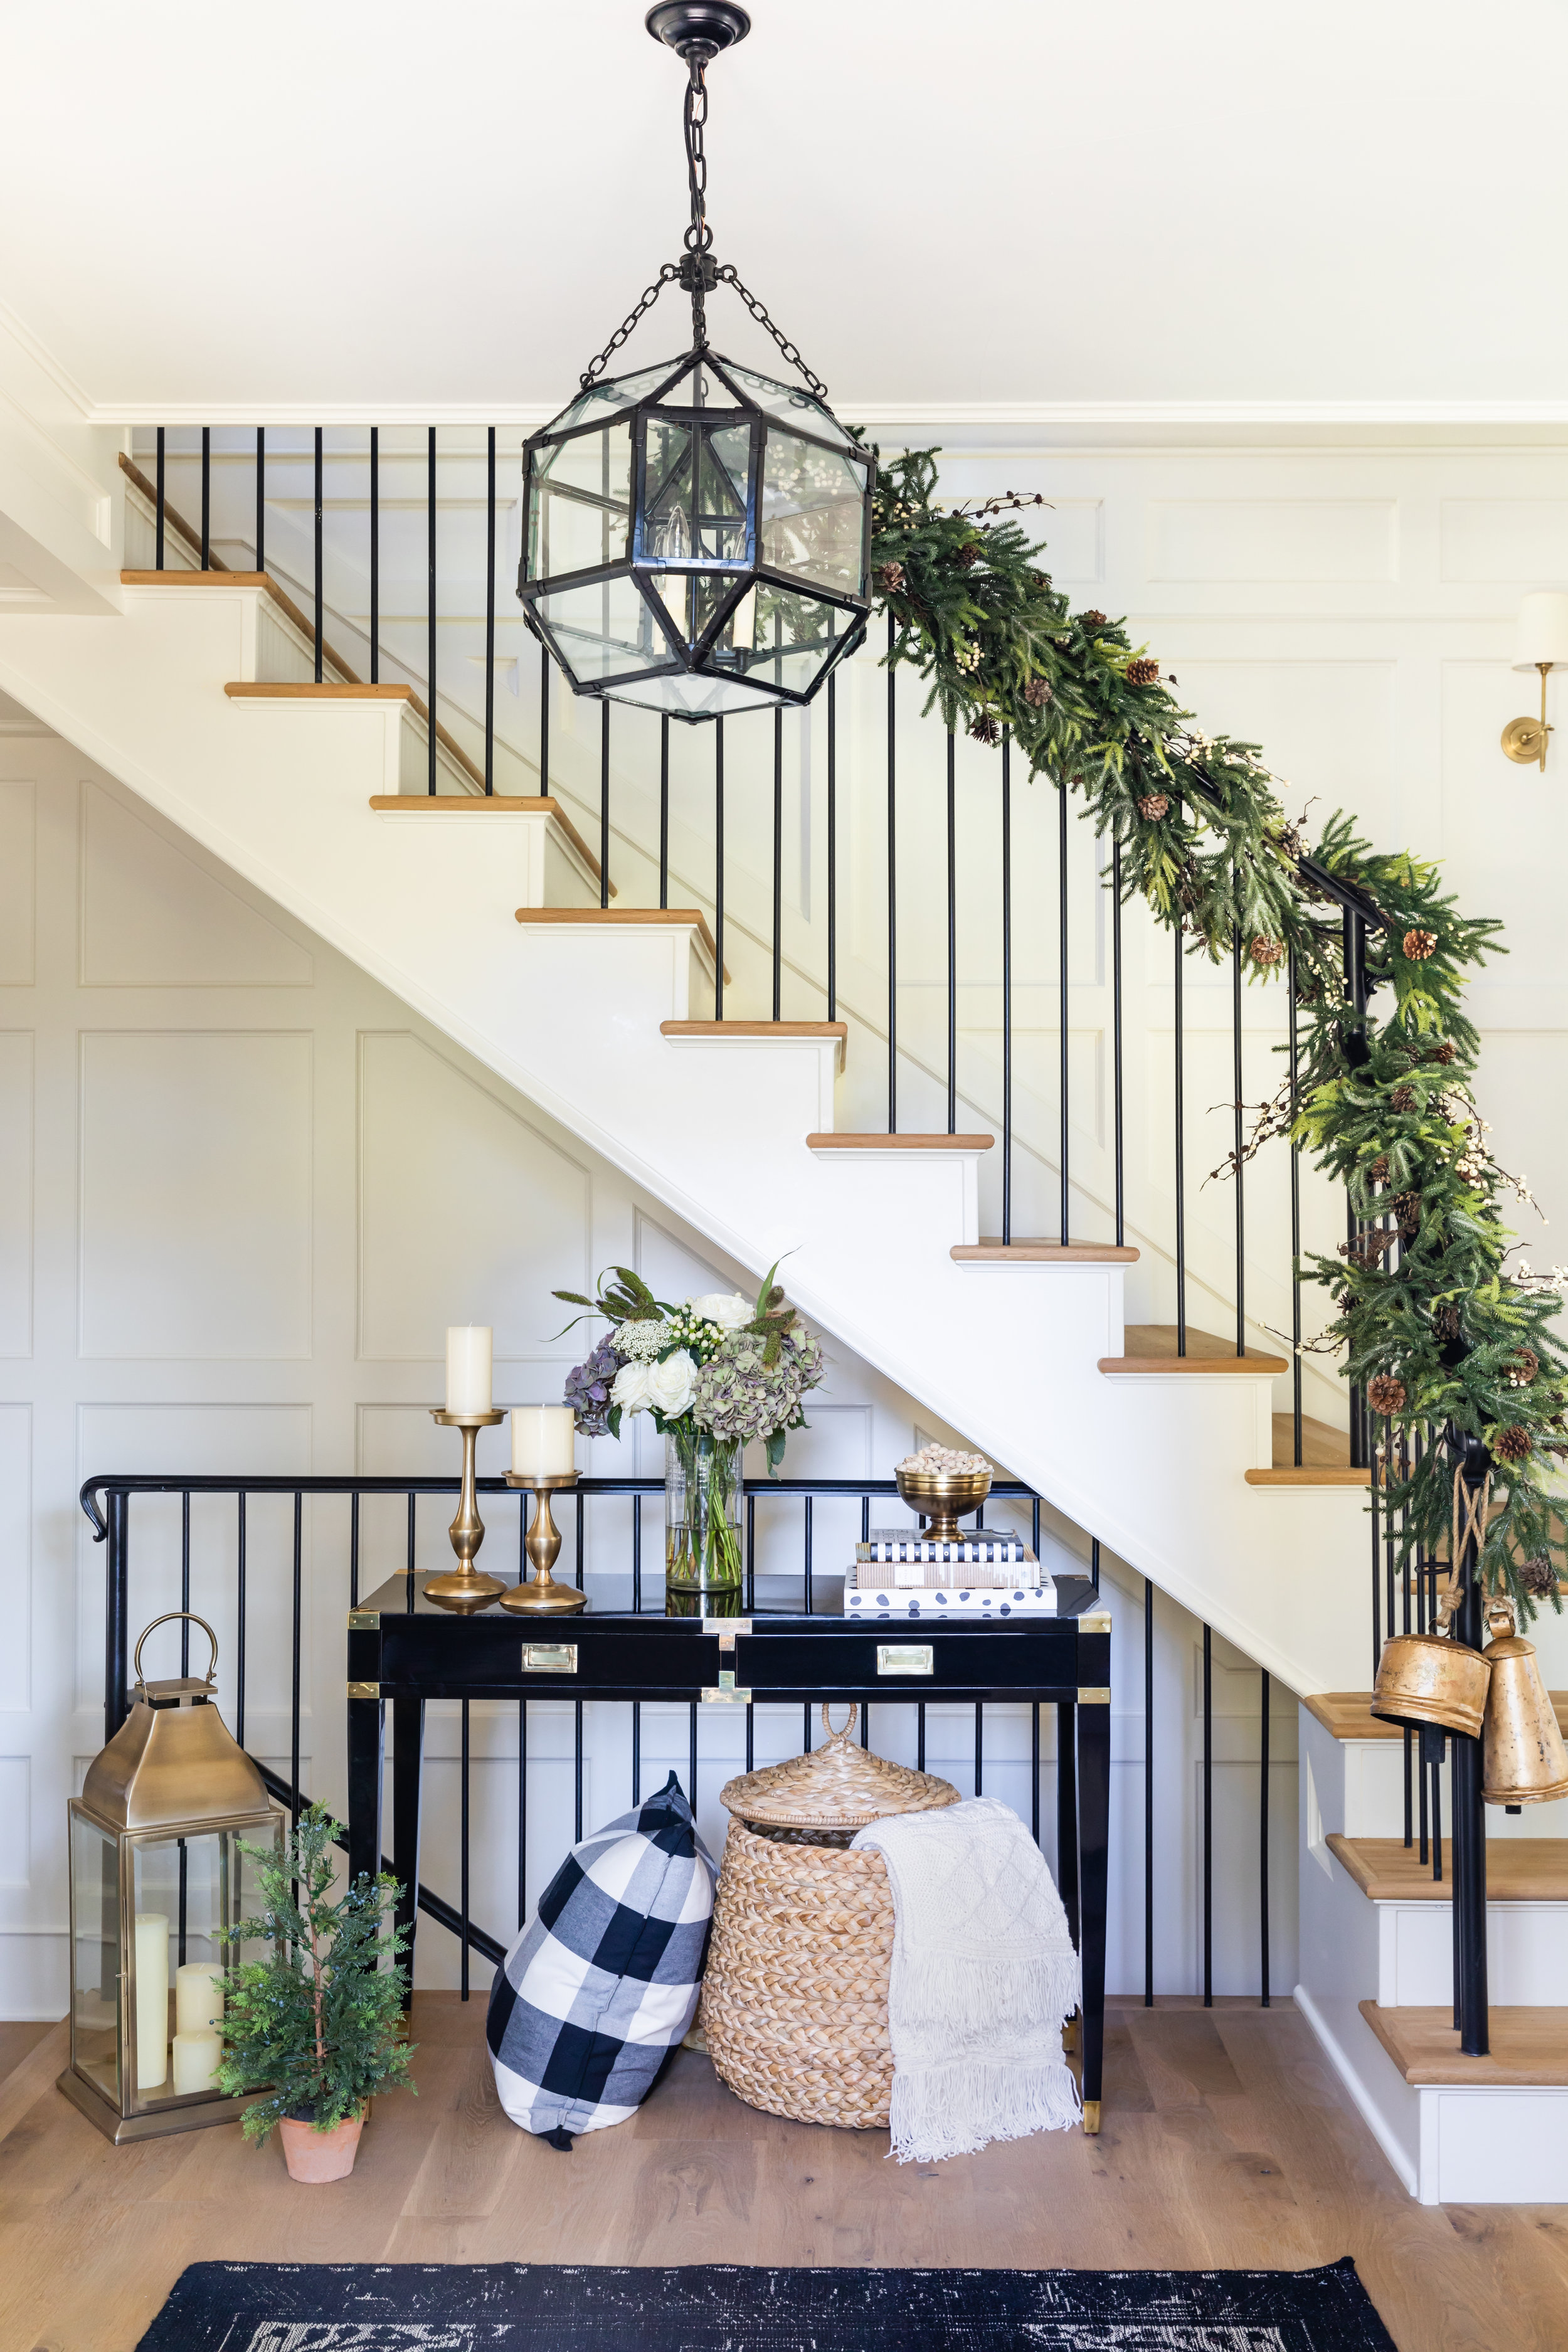 Black and white contemporary entryway with Pottery Barn Christmas bells, garland on staircase, and brass lanterns.